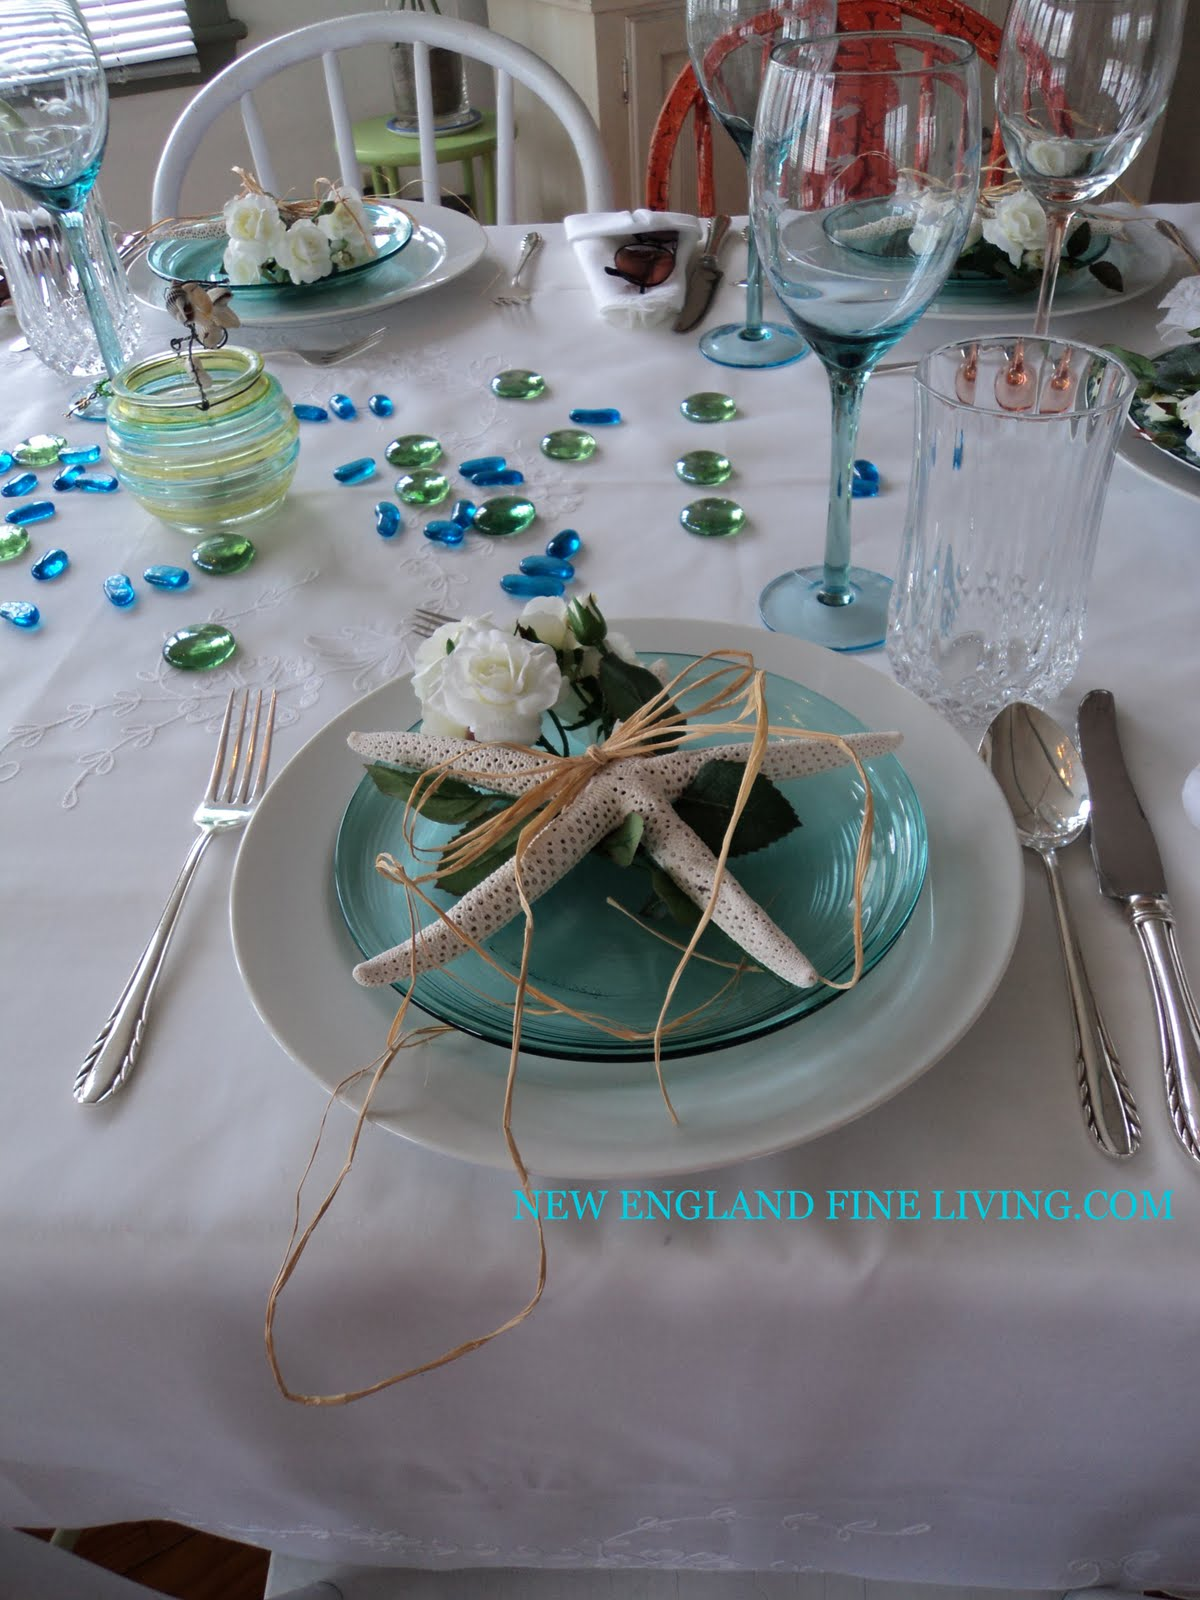 Wedding Table Beach Theme Wedding Table Decorations similiar beach themed banquet table keywords after cutting some of the roses off stem i tied them to the